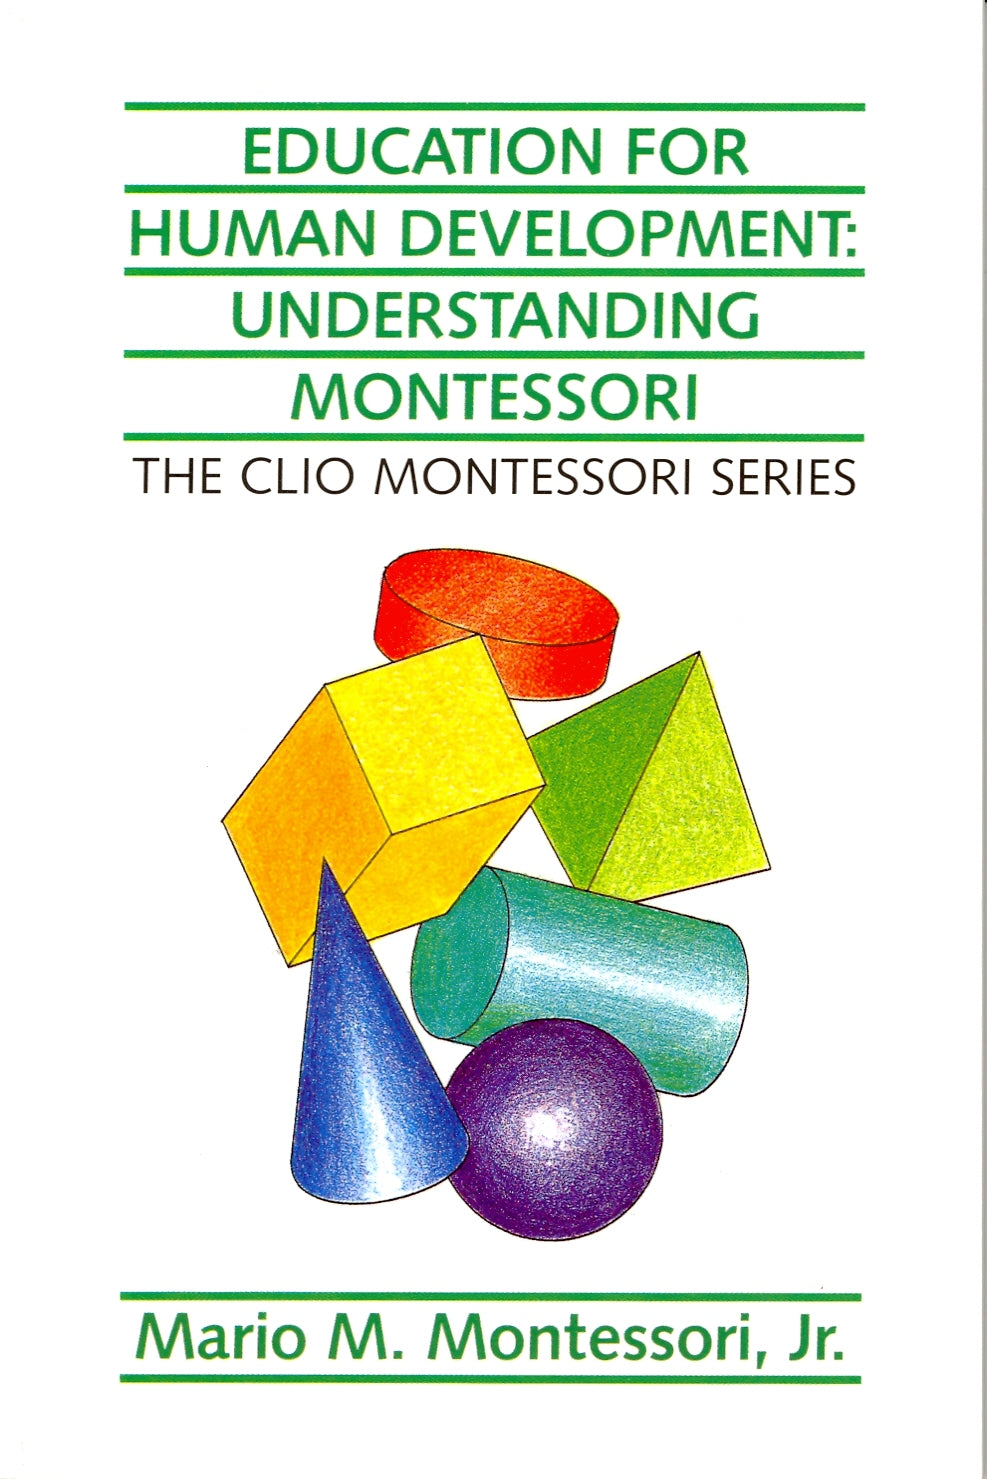 Education for Human Development: Understanding Montessori